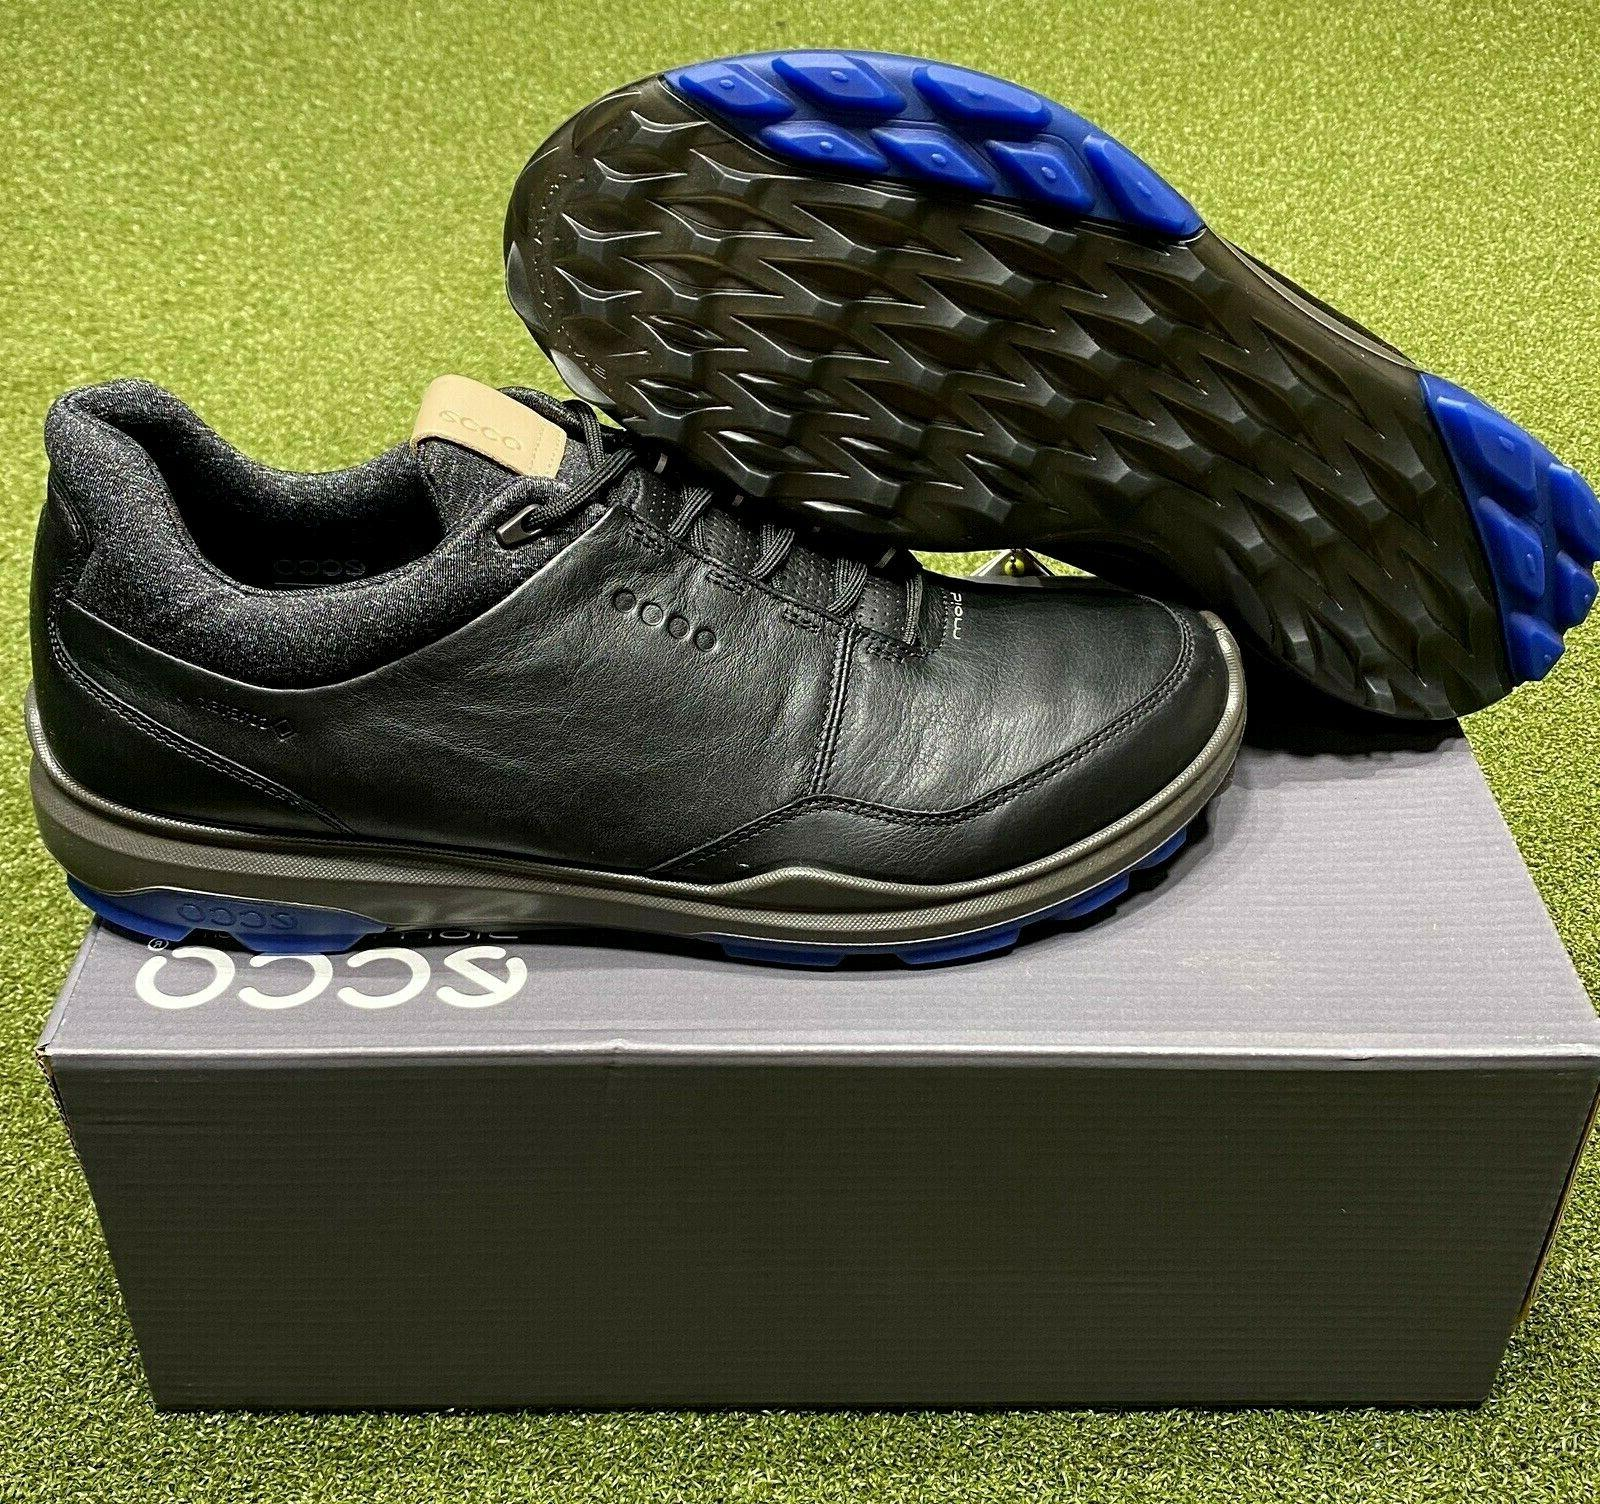 ECCO Biom Hybrid 3 Spikeless Men's Golf Shoes Size 44 Black/